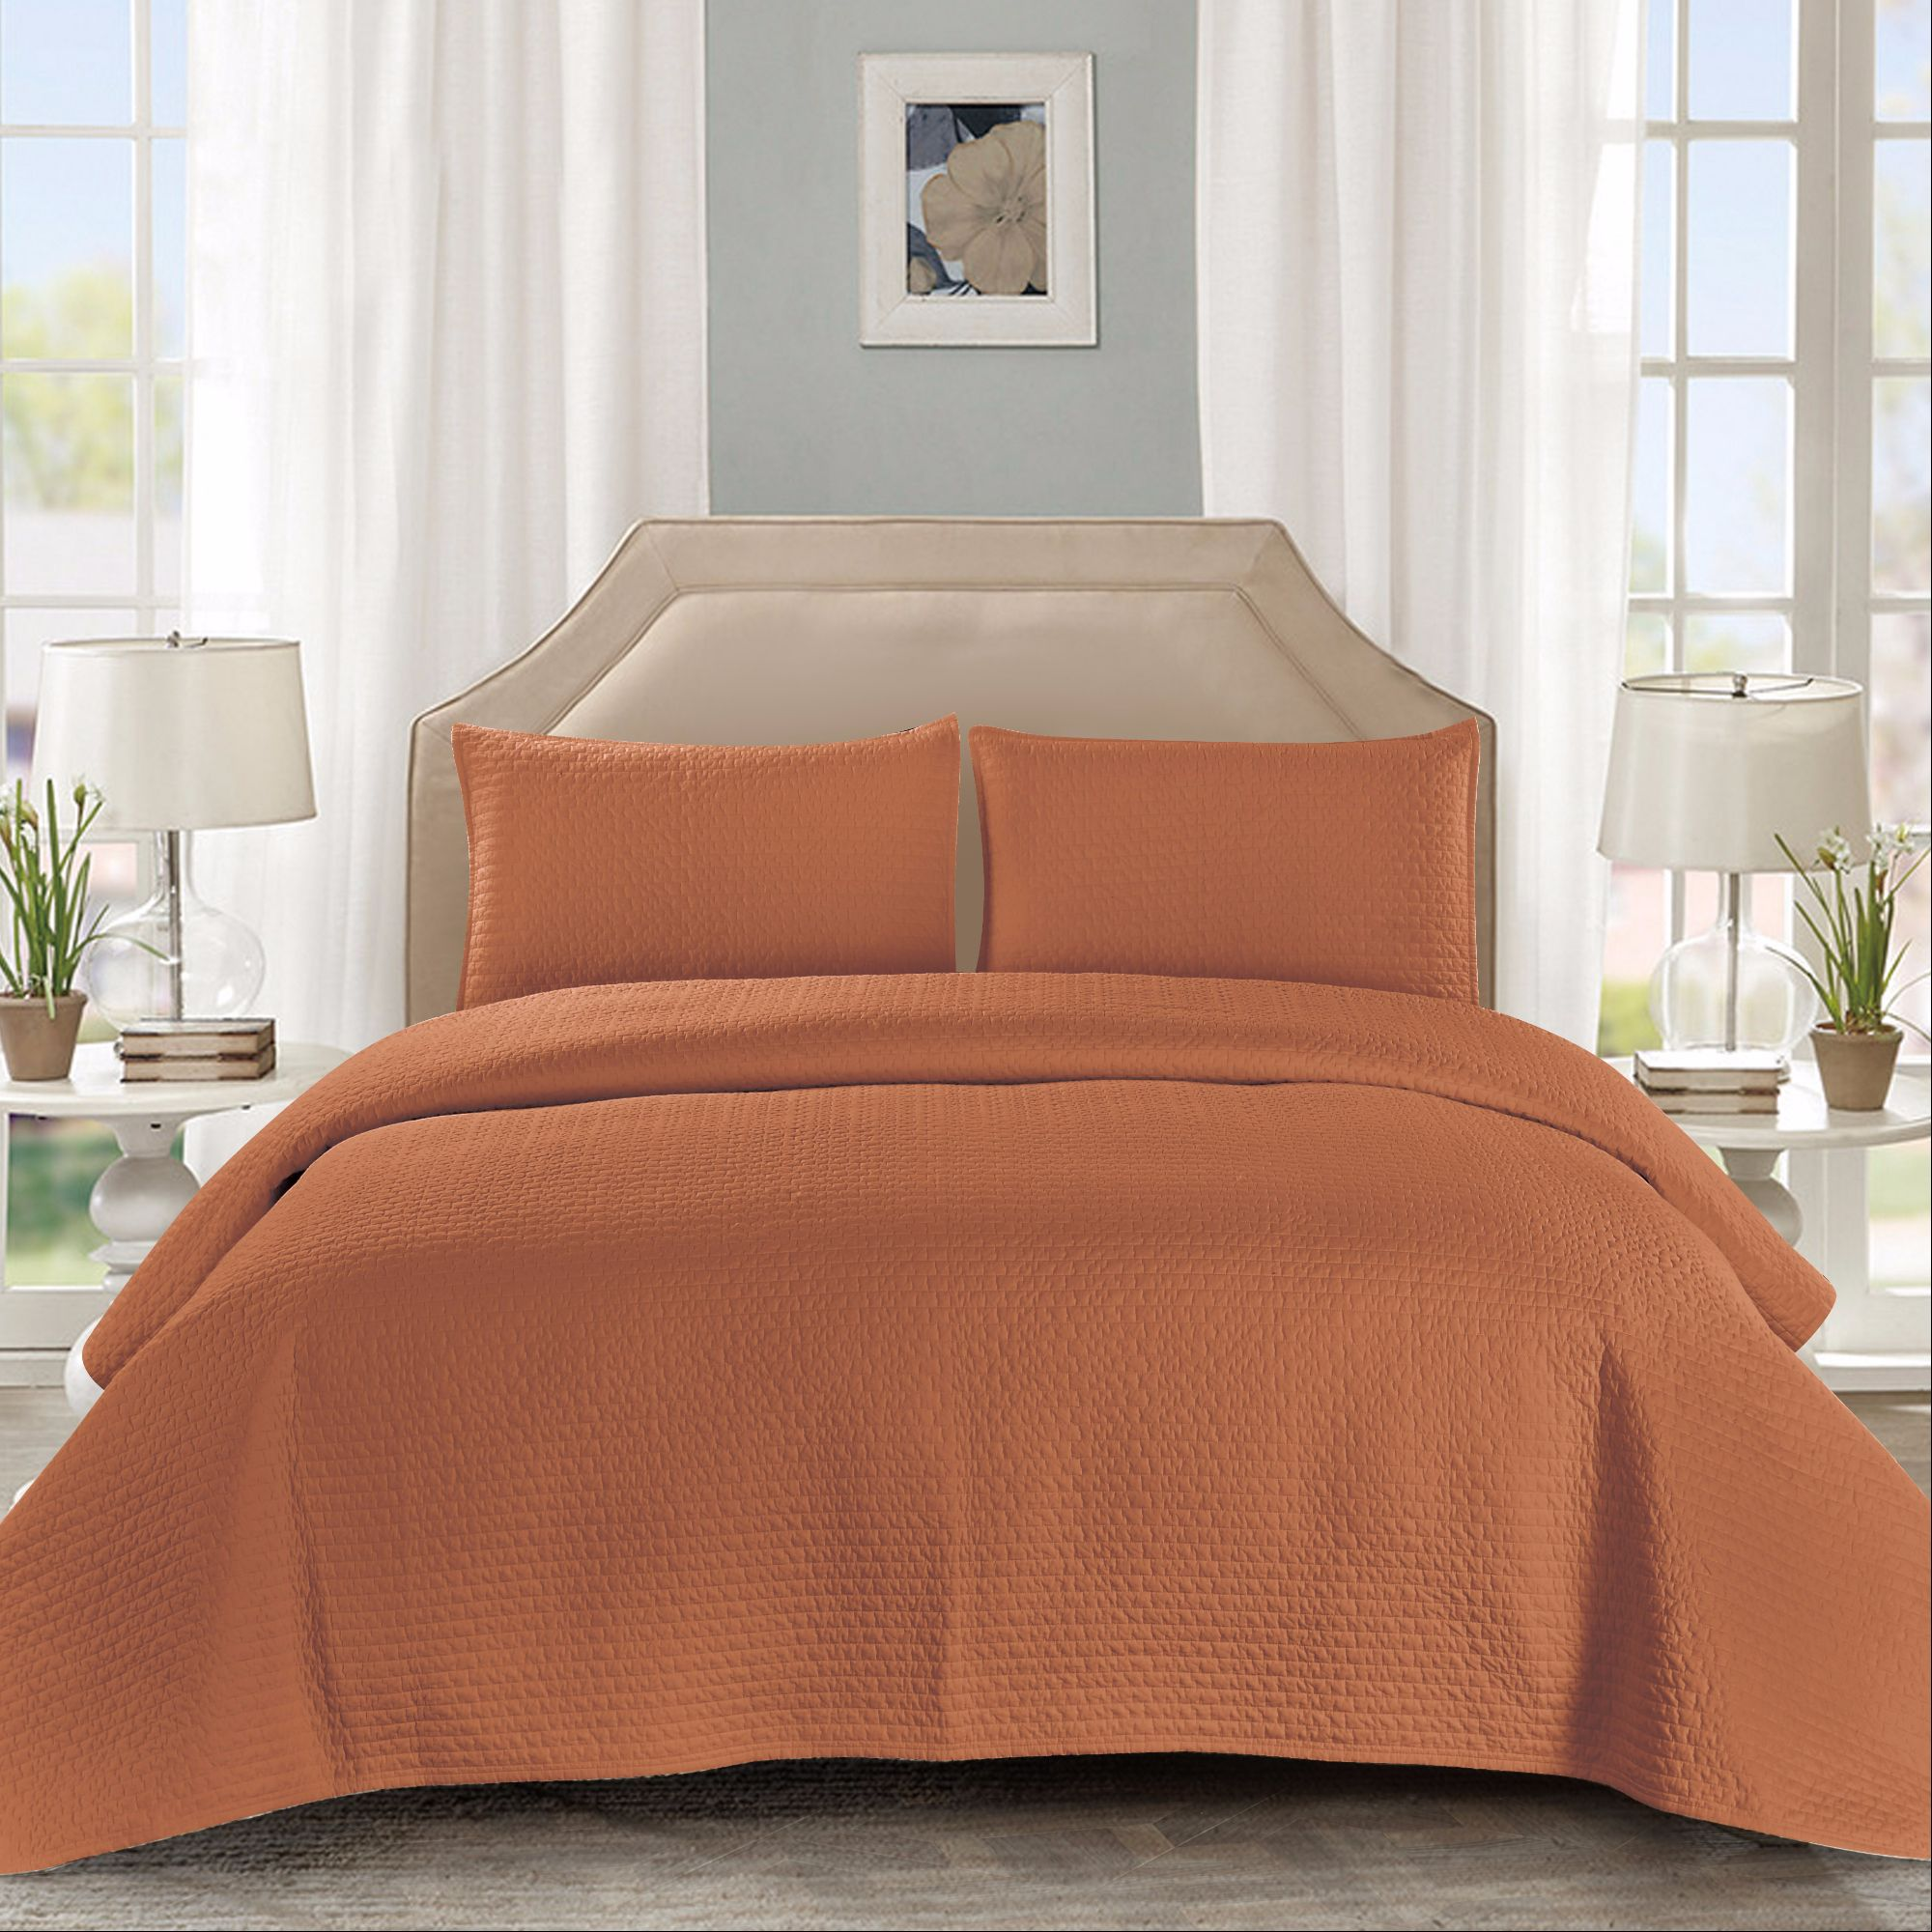 Queen Size Futon Cover Bed Bath And Beyond